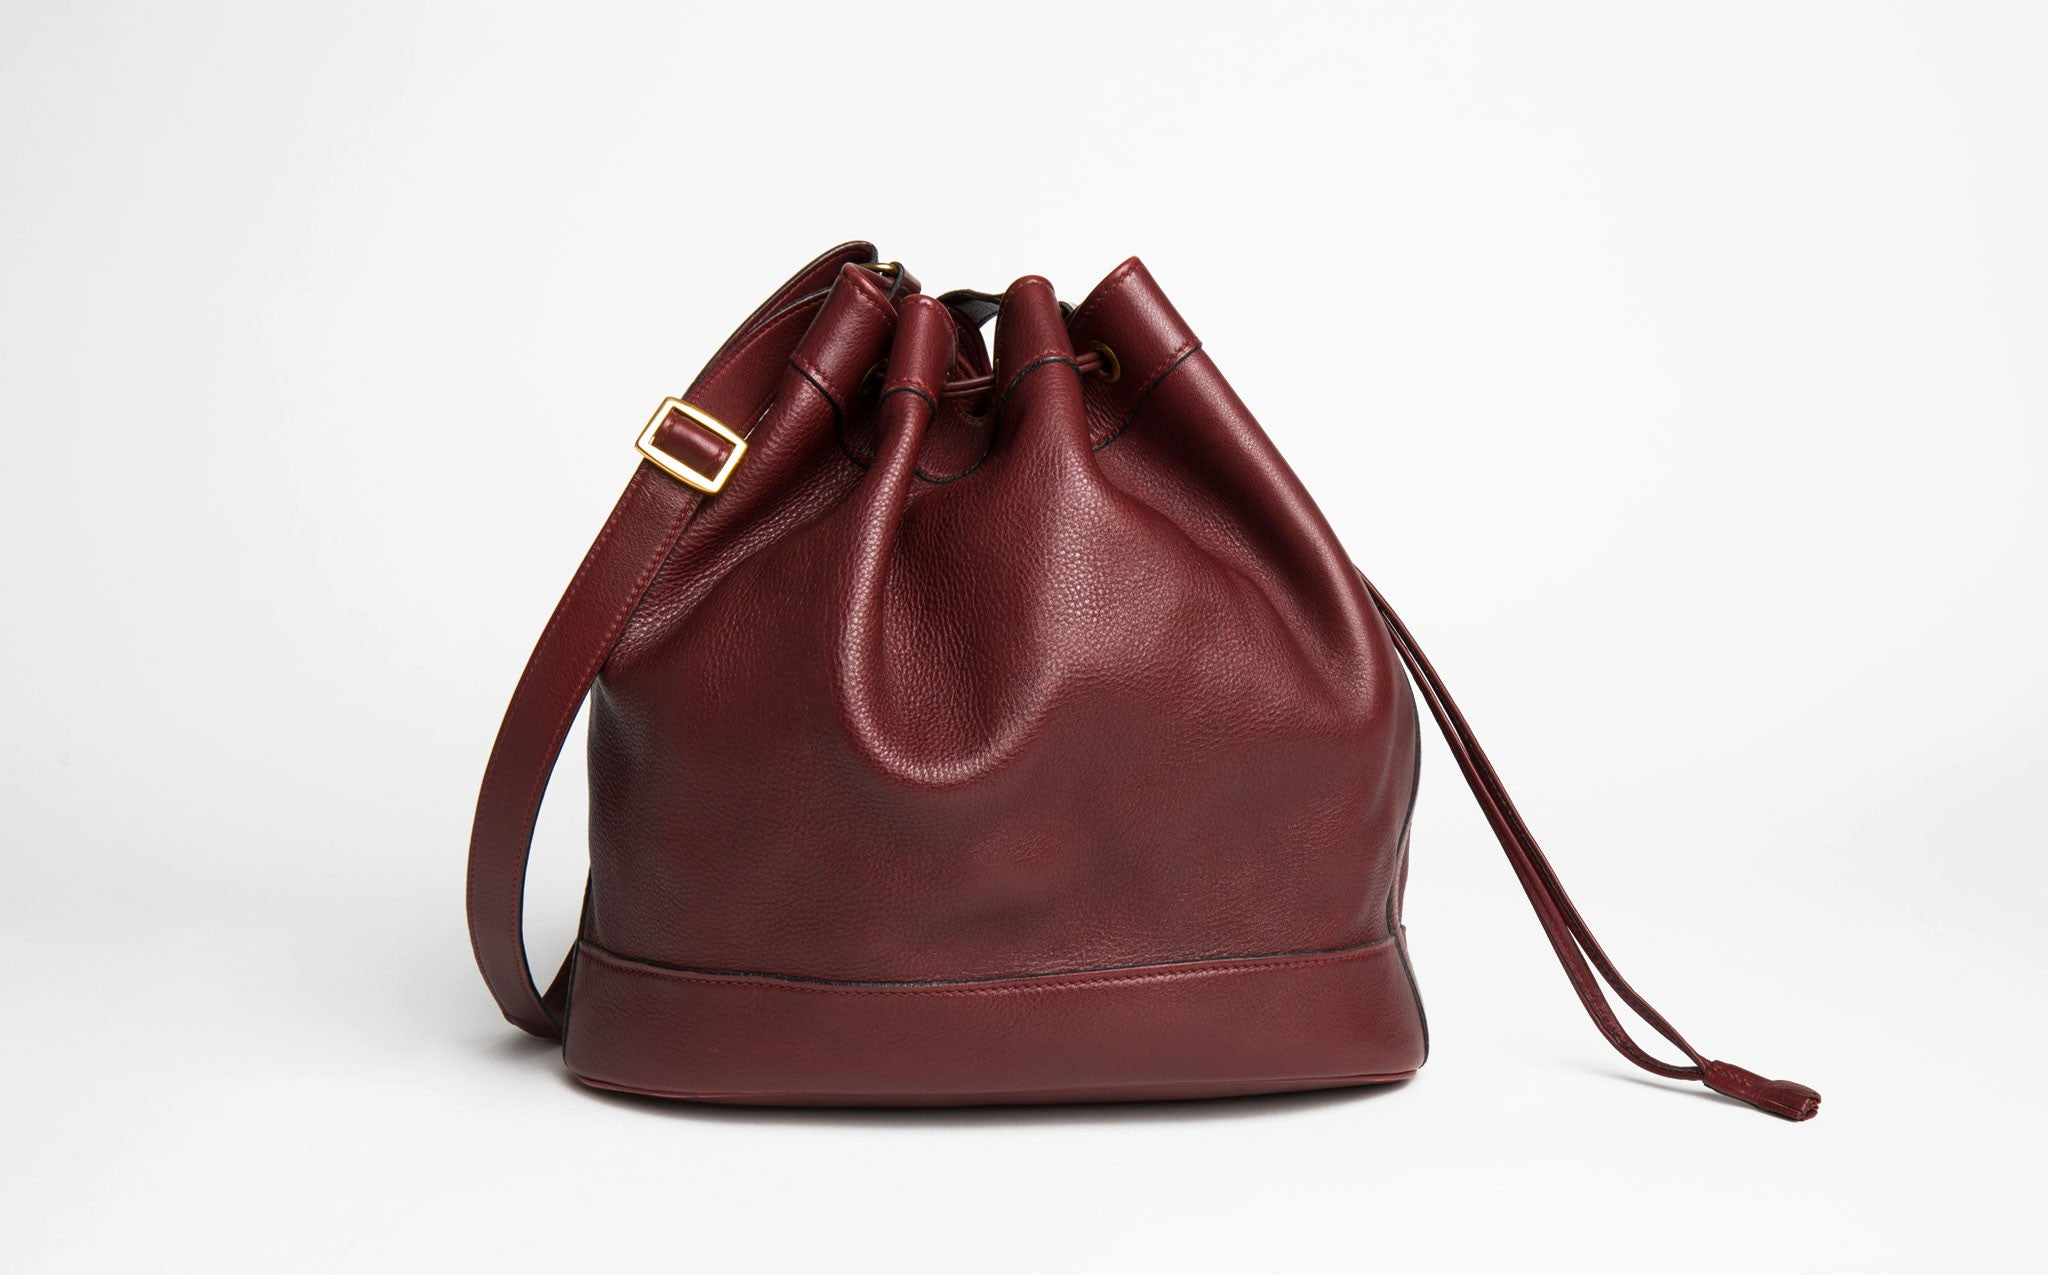 Hermés Vintage Oxblood Market Bucket Bag